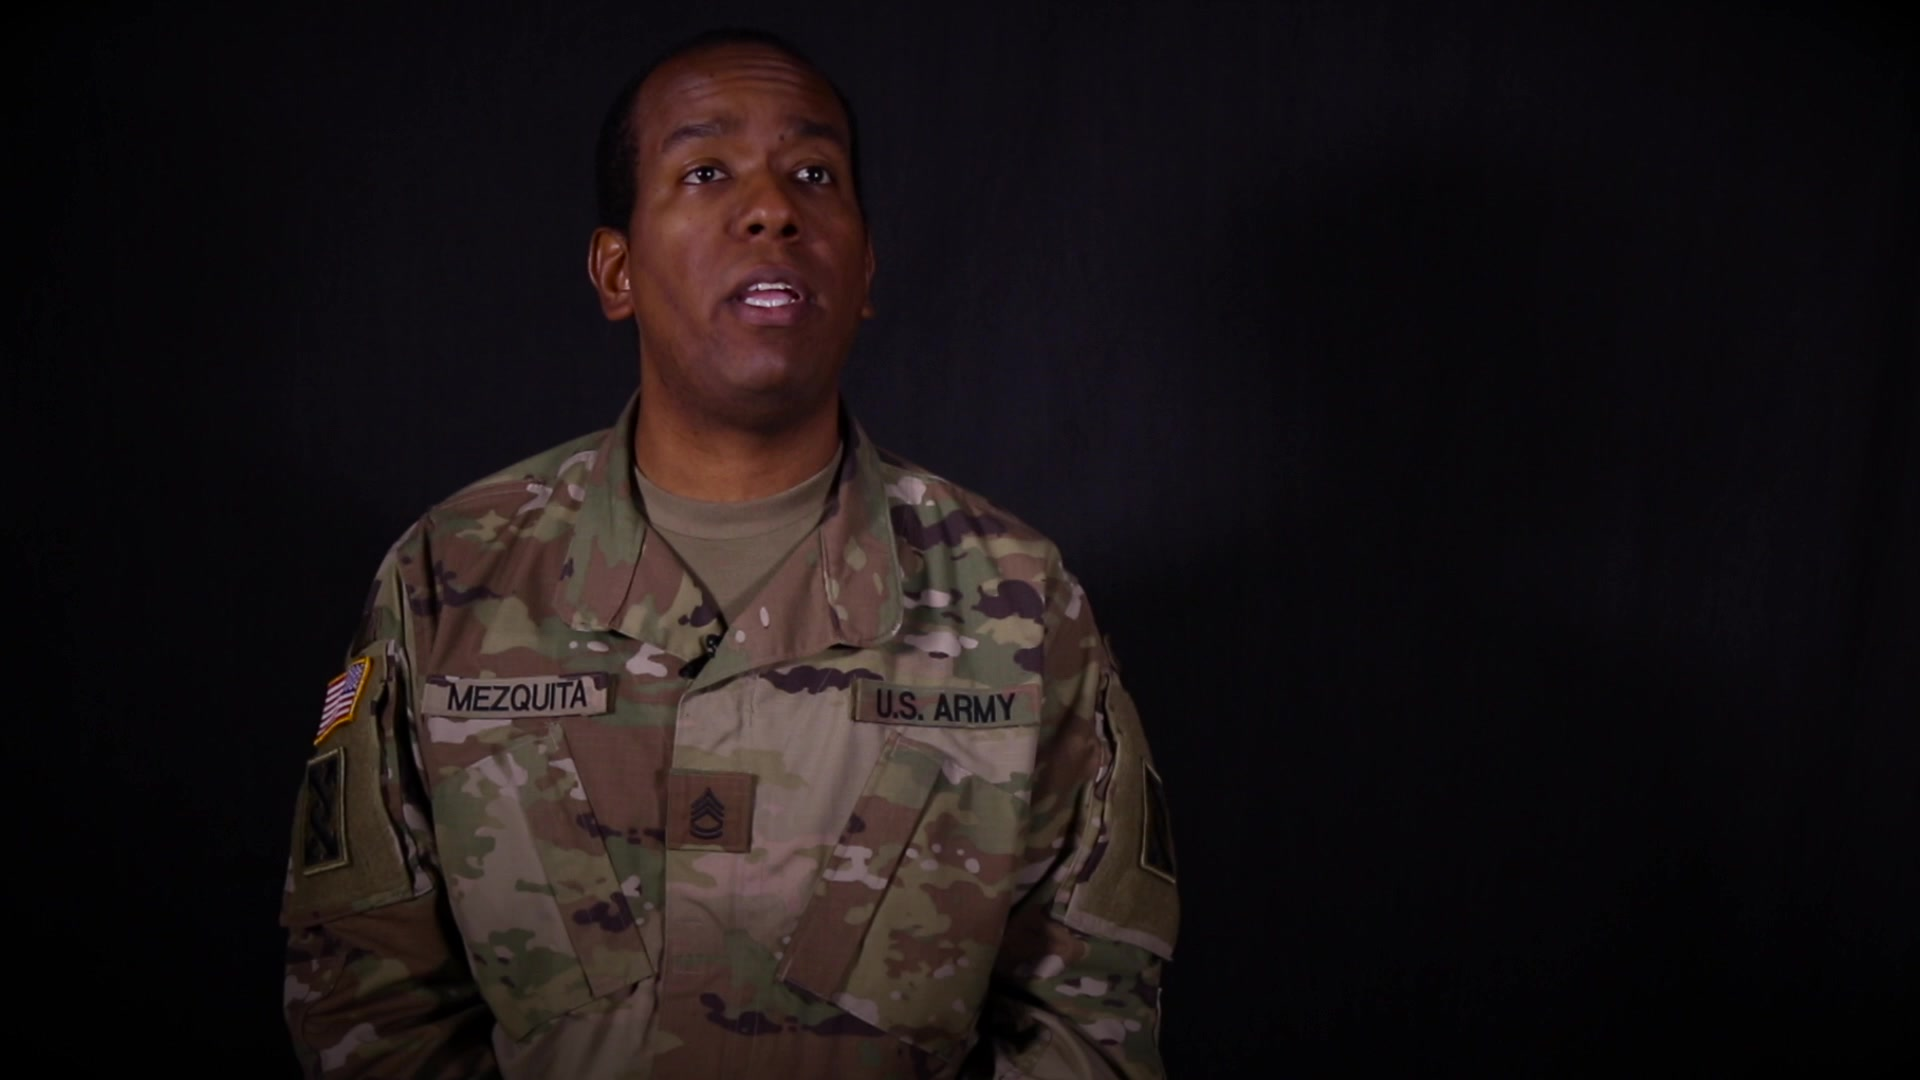 Sgt. 1st Class Christopher Mezquita is Active Guard Reserve Soldier assigned to the 143d Sustainment Command (Expeditionary) in Orlando,FL. In this interview, Sgt. 1st Class Mezquita shares why he joined and continues to serve in the U.S. Army Reserve. (U.S. Army video by Spc. Leon Orange)